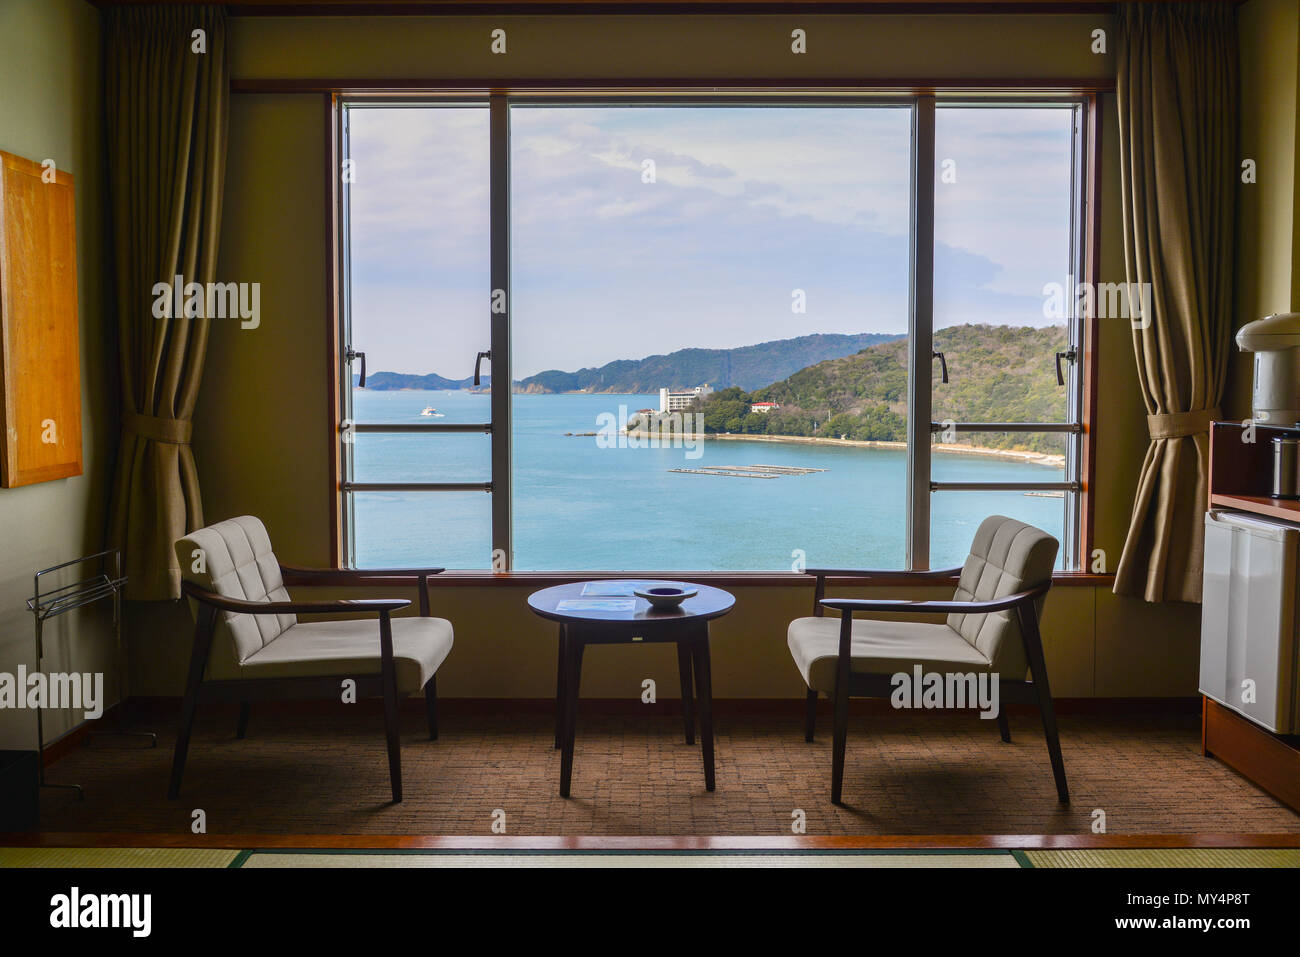 Sea view room of traditional hotel in Kumano, Japan. Stock Photo